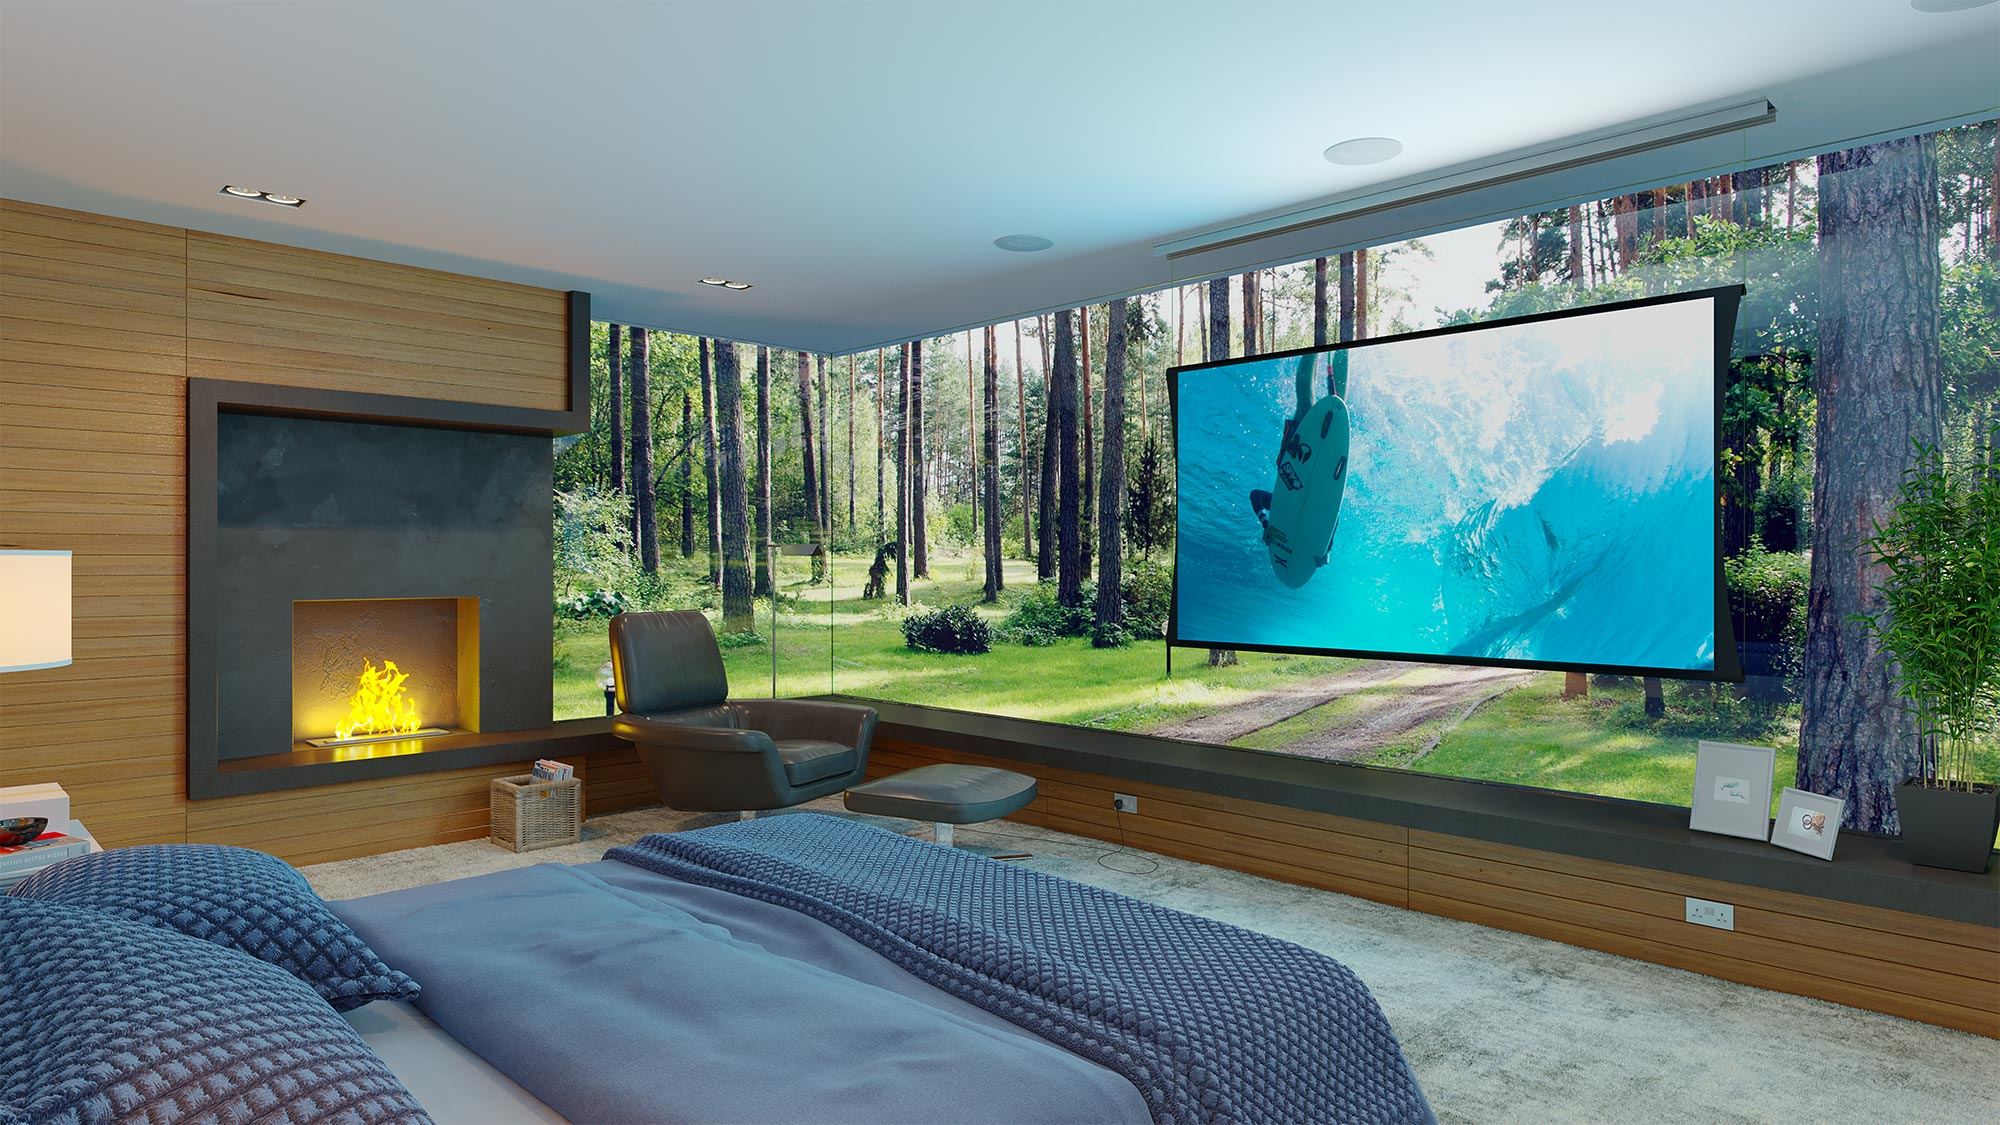 Awesome Projector Setup